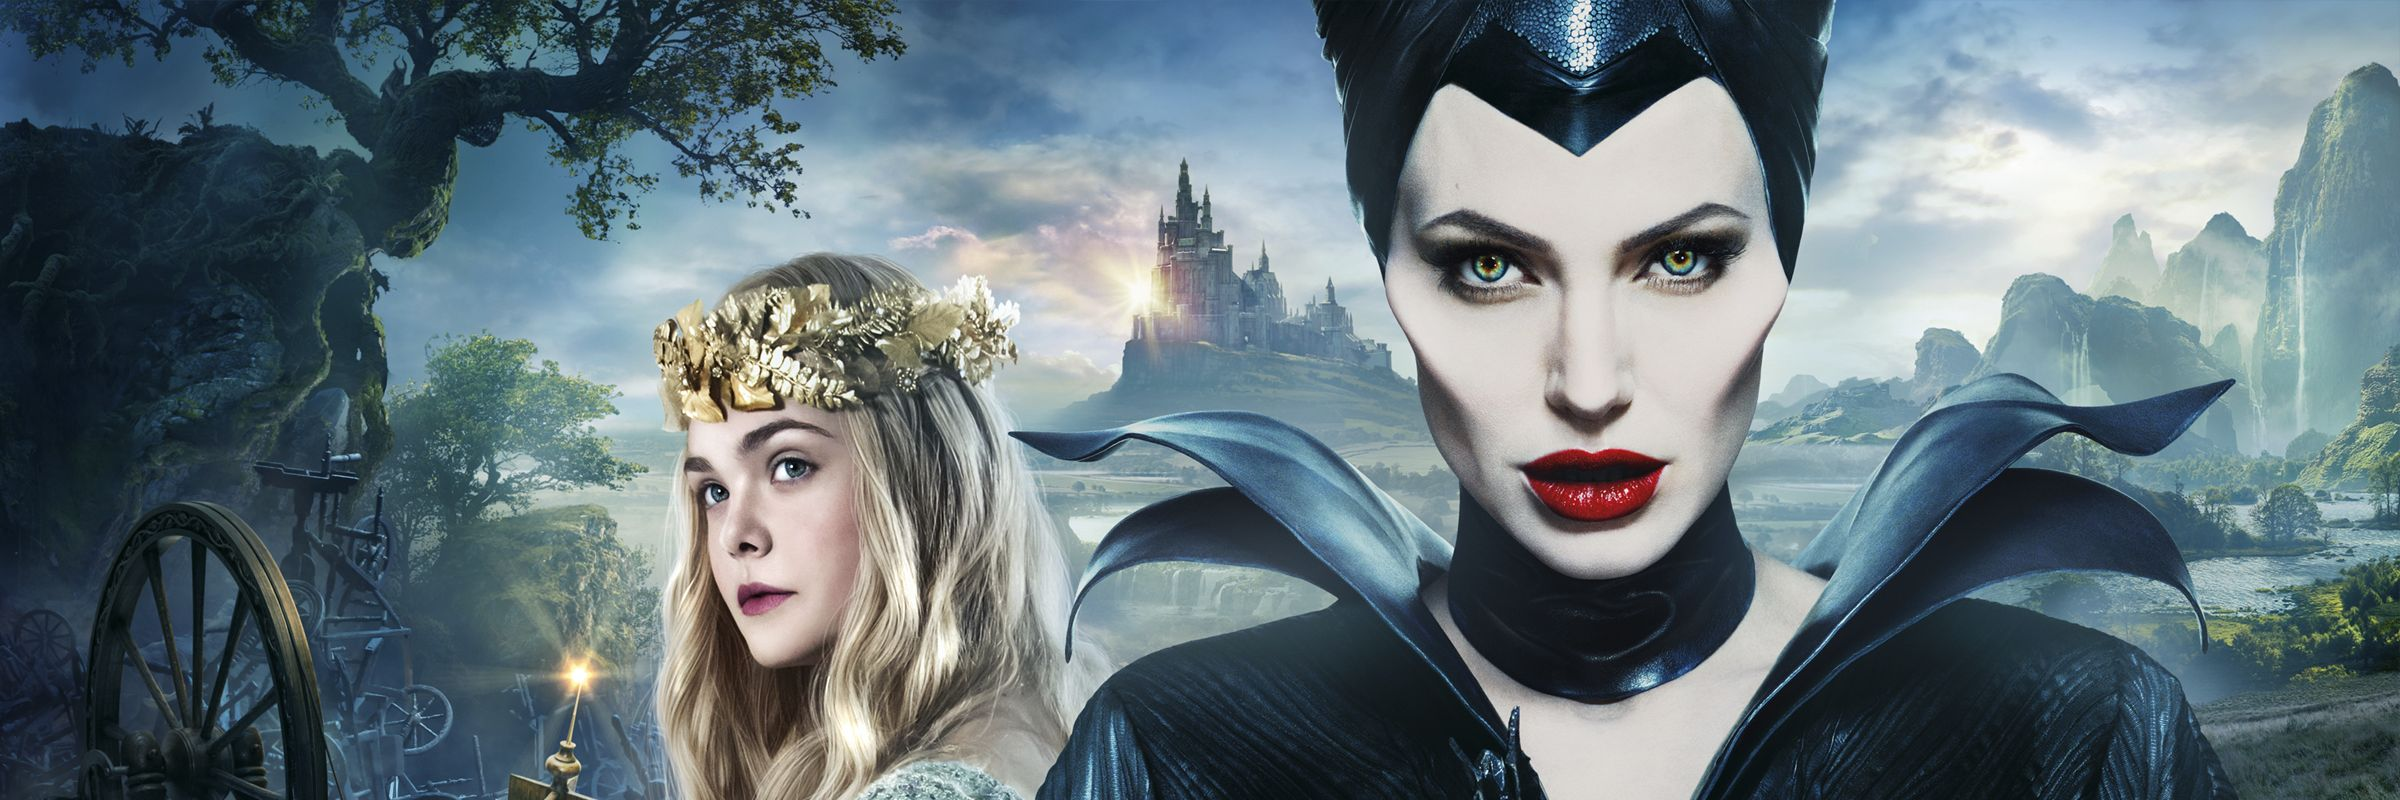 Maleficent Trailer